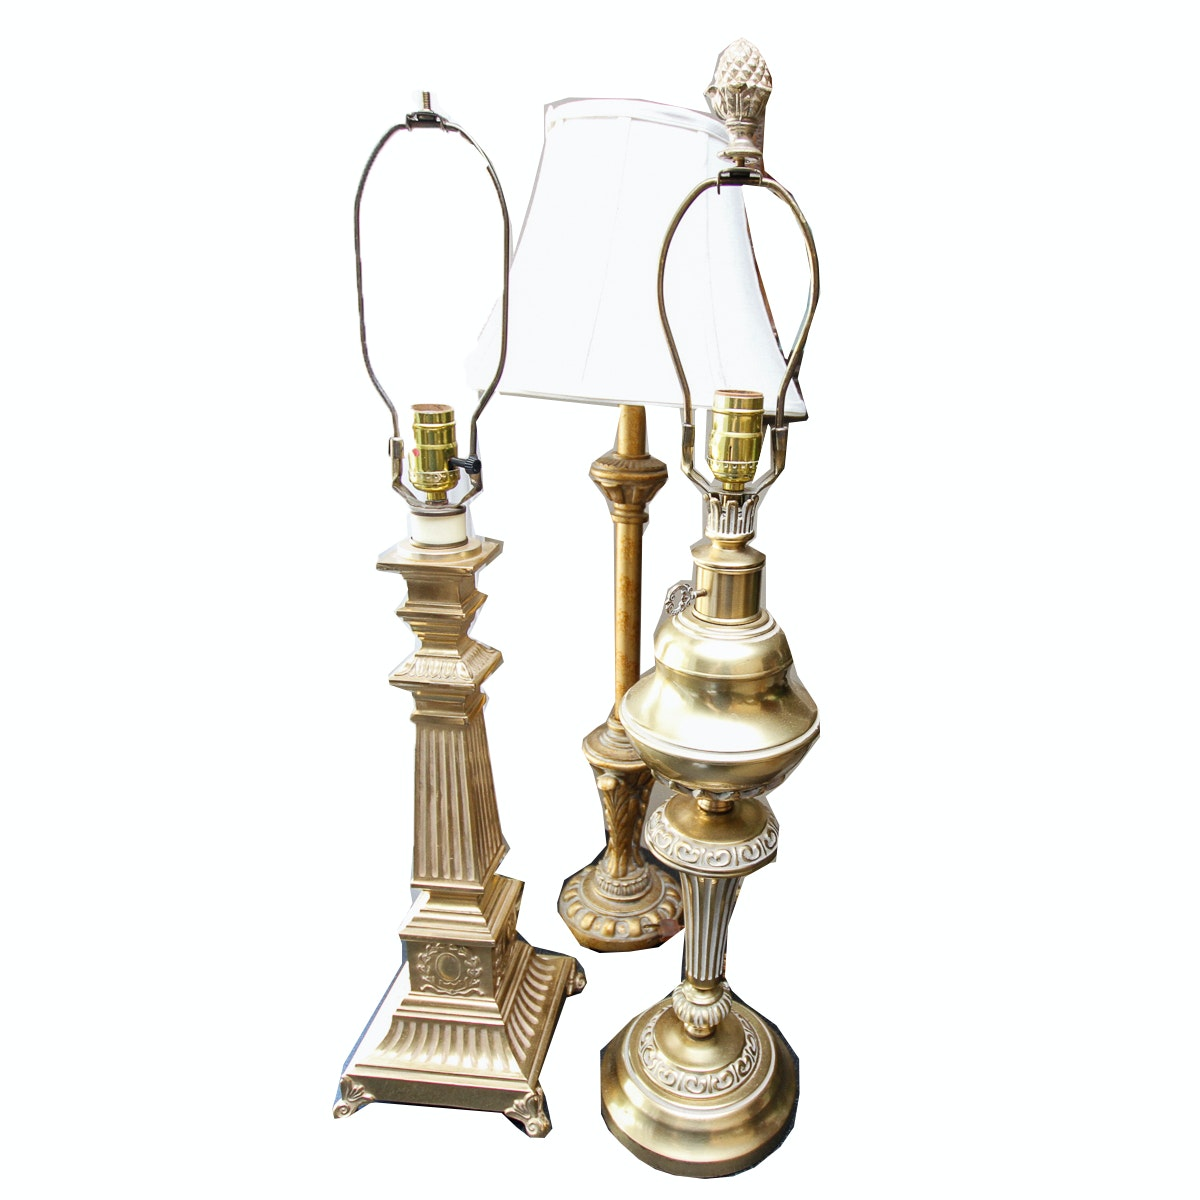 Three Gold Tone Table Lamps